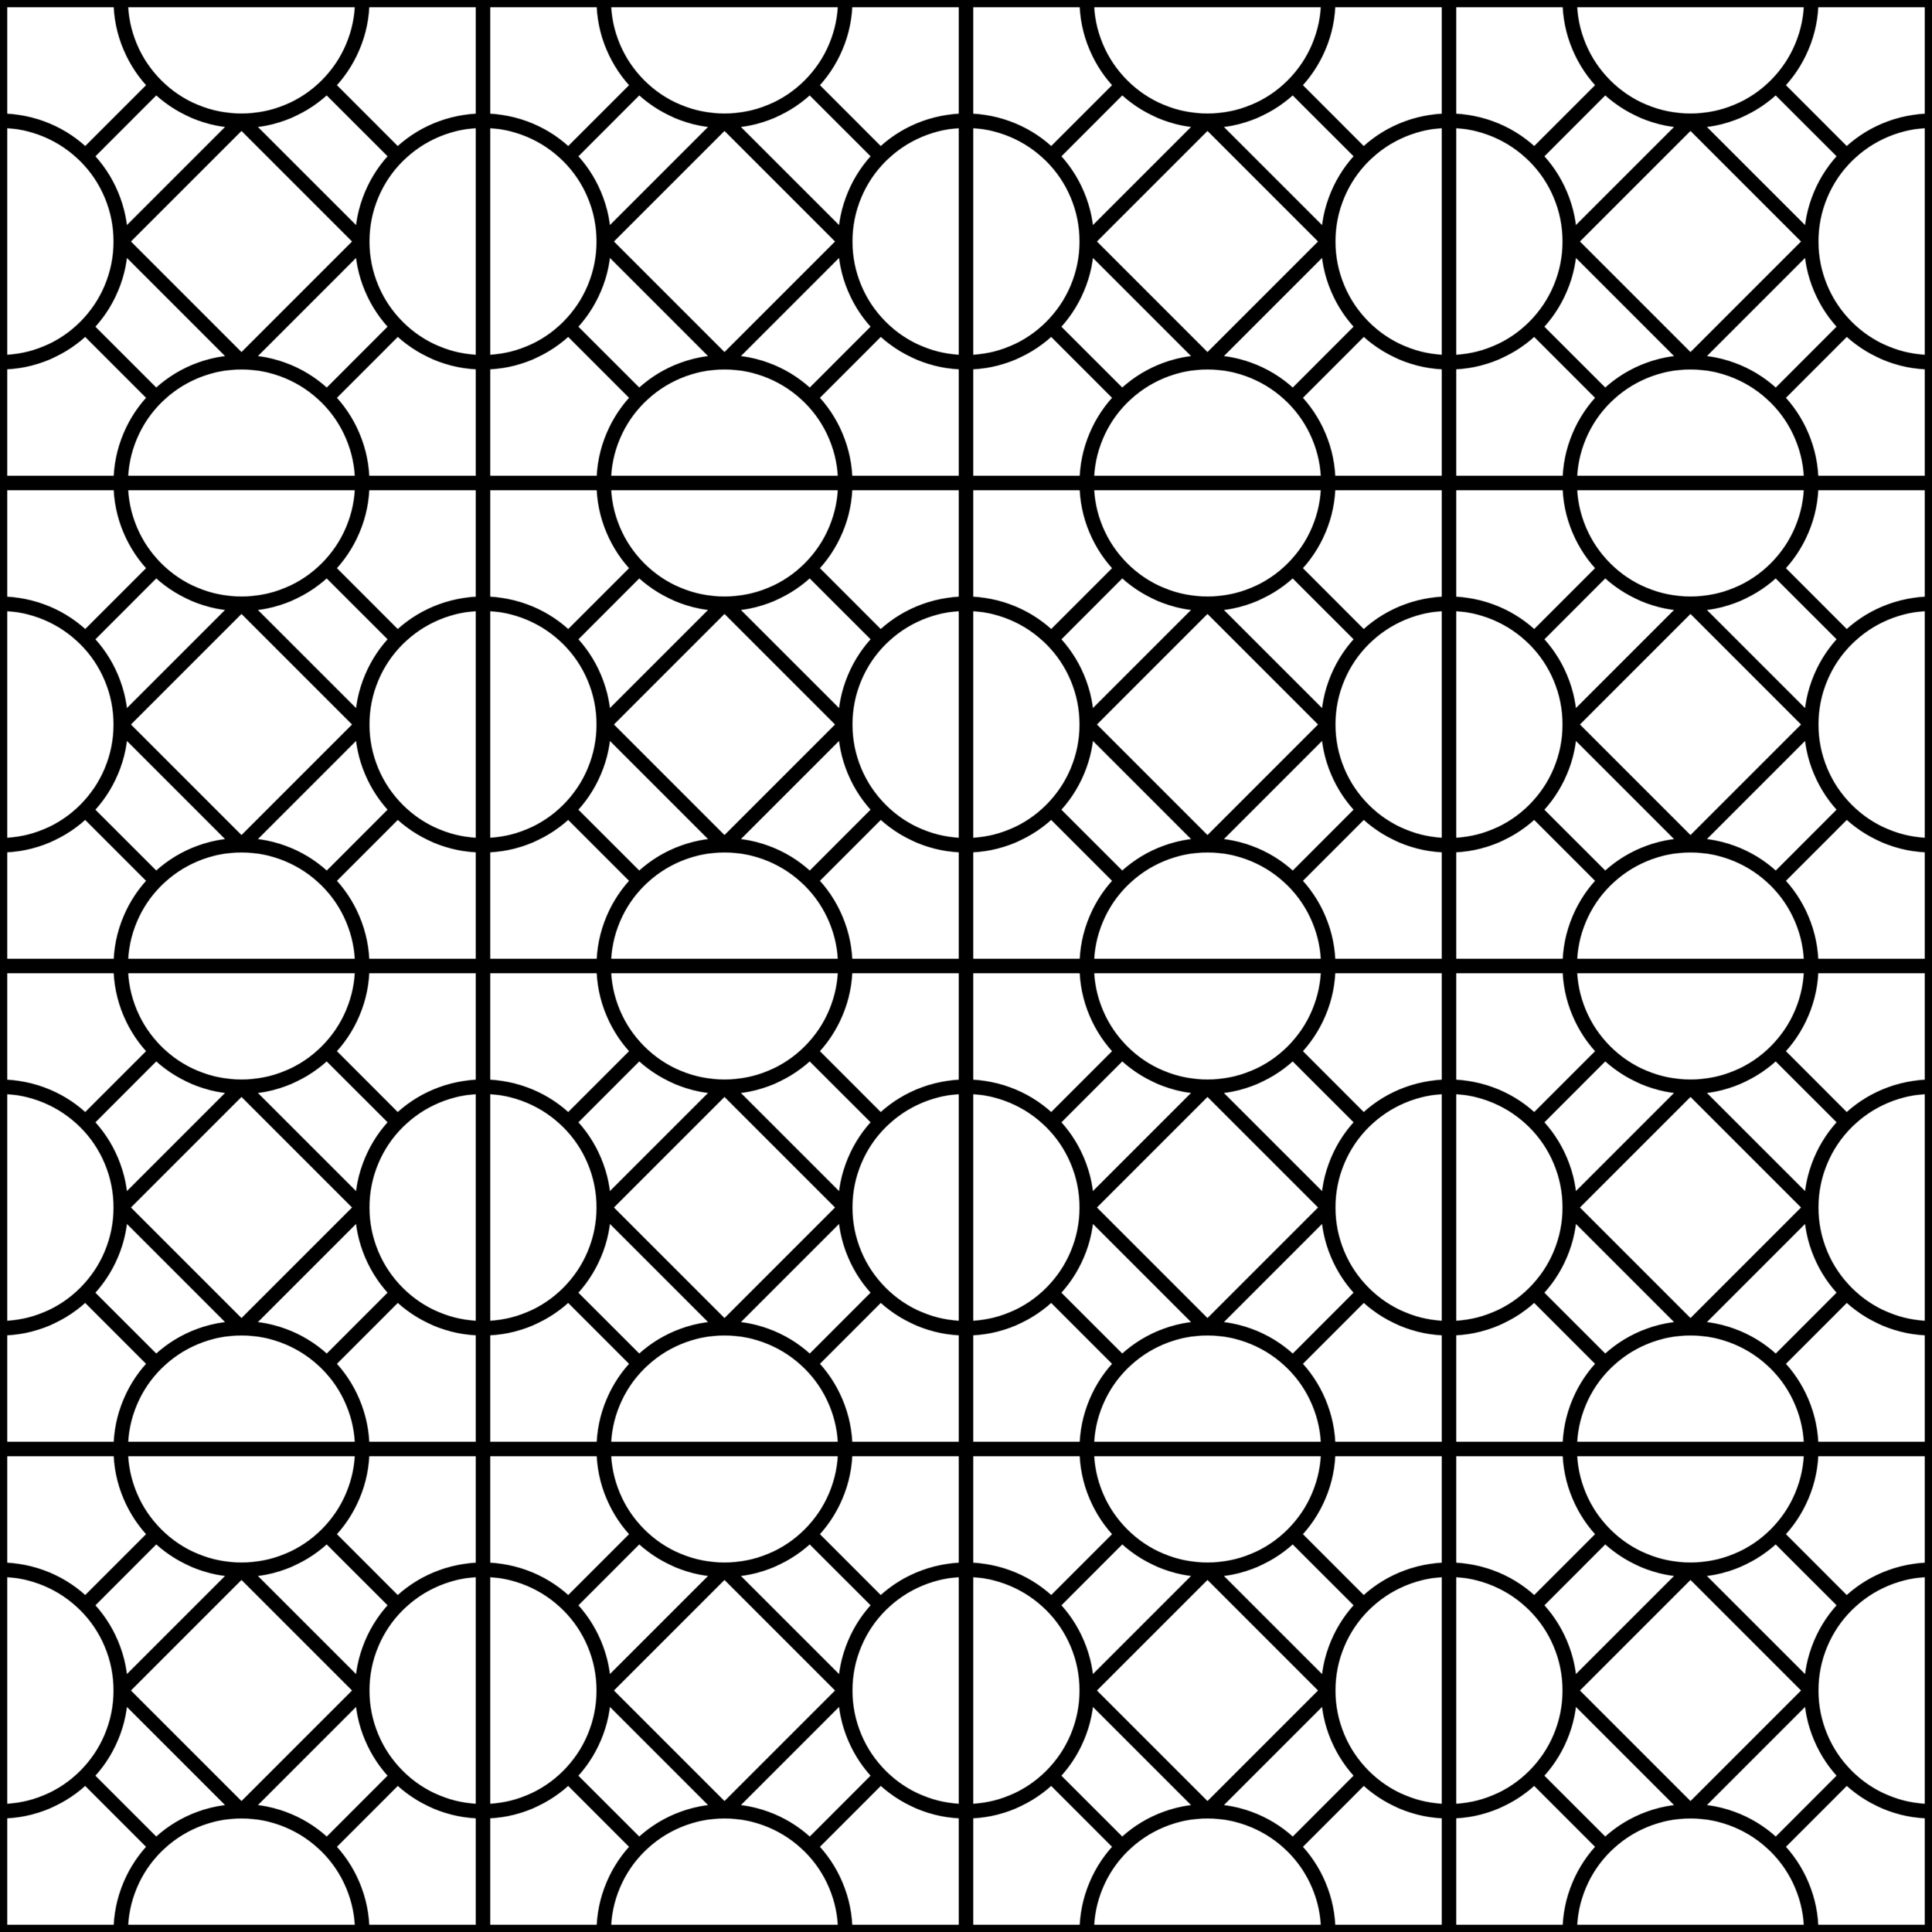 BYC_TILE_GEO_19.png